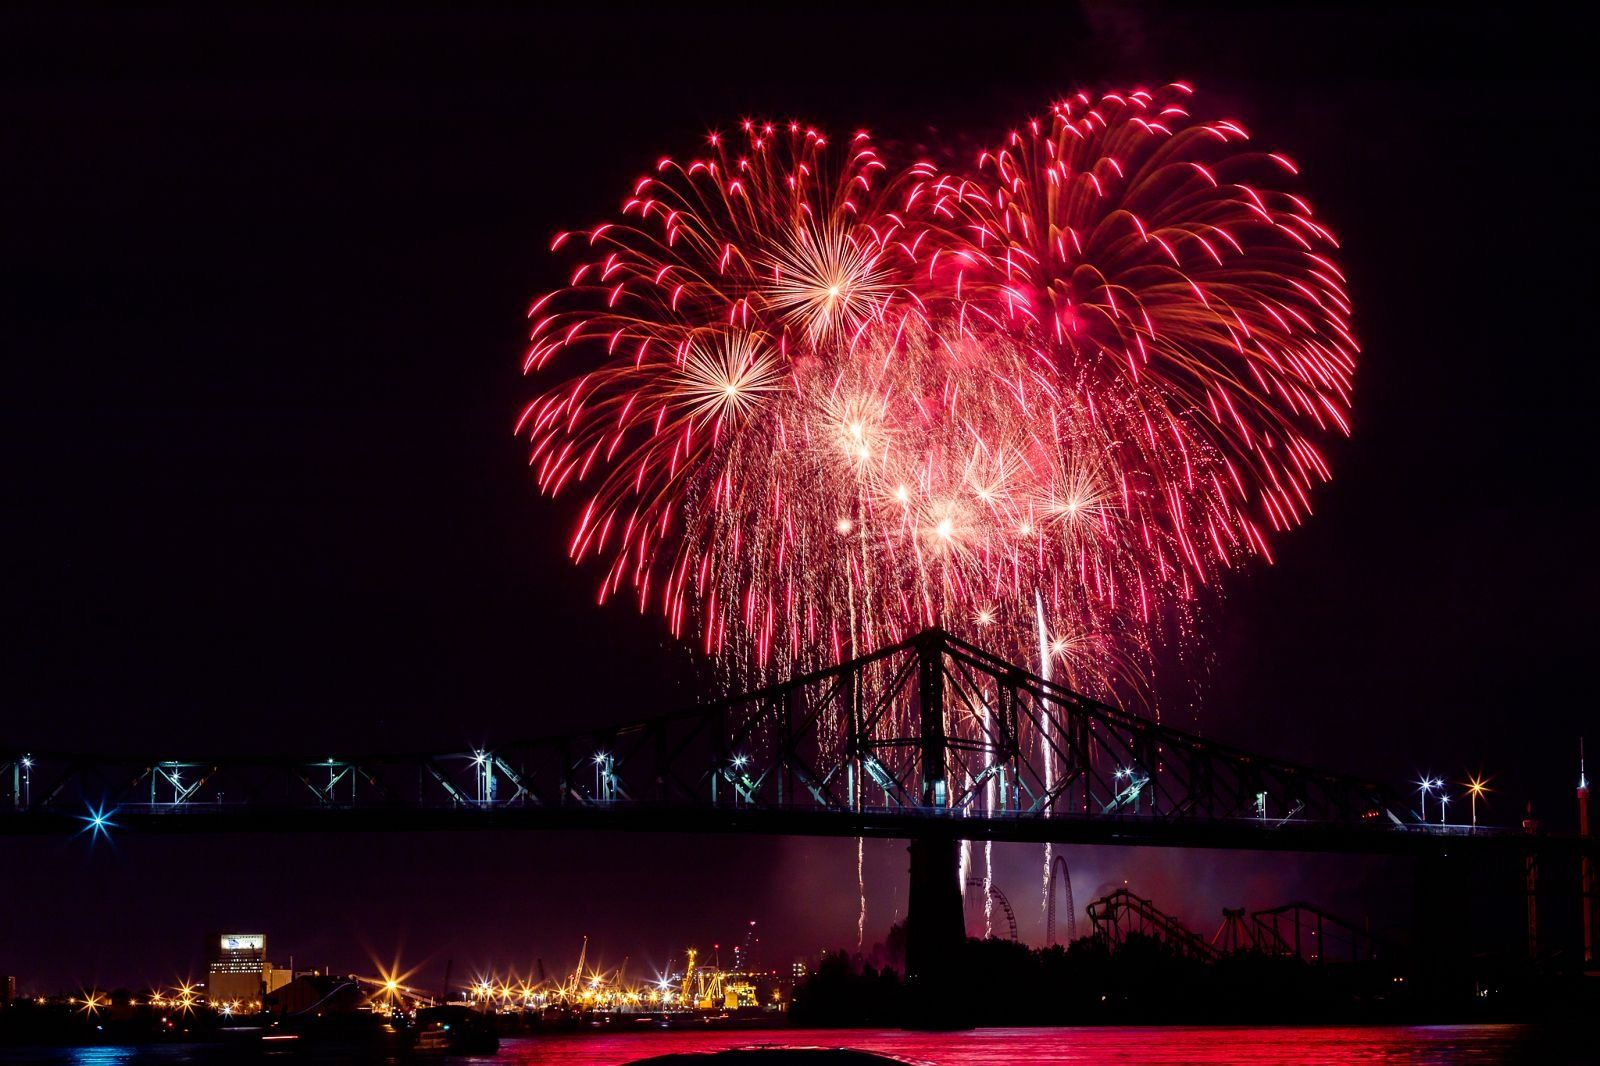 montreal_fireworks_competition_201723_1100.jpg